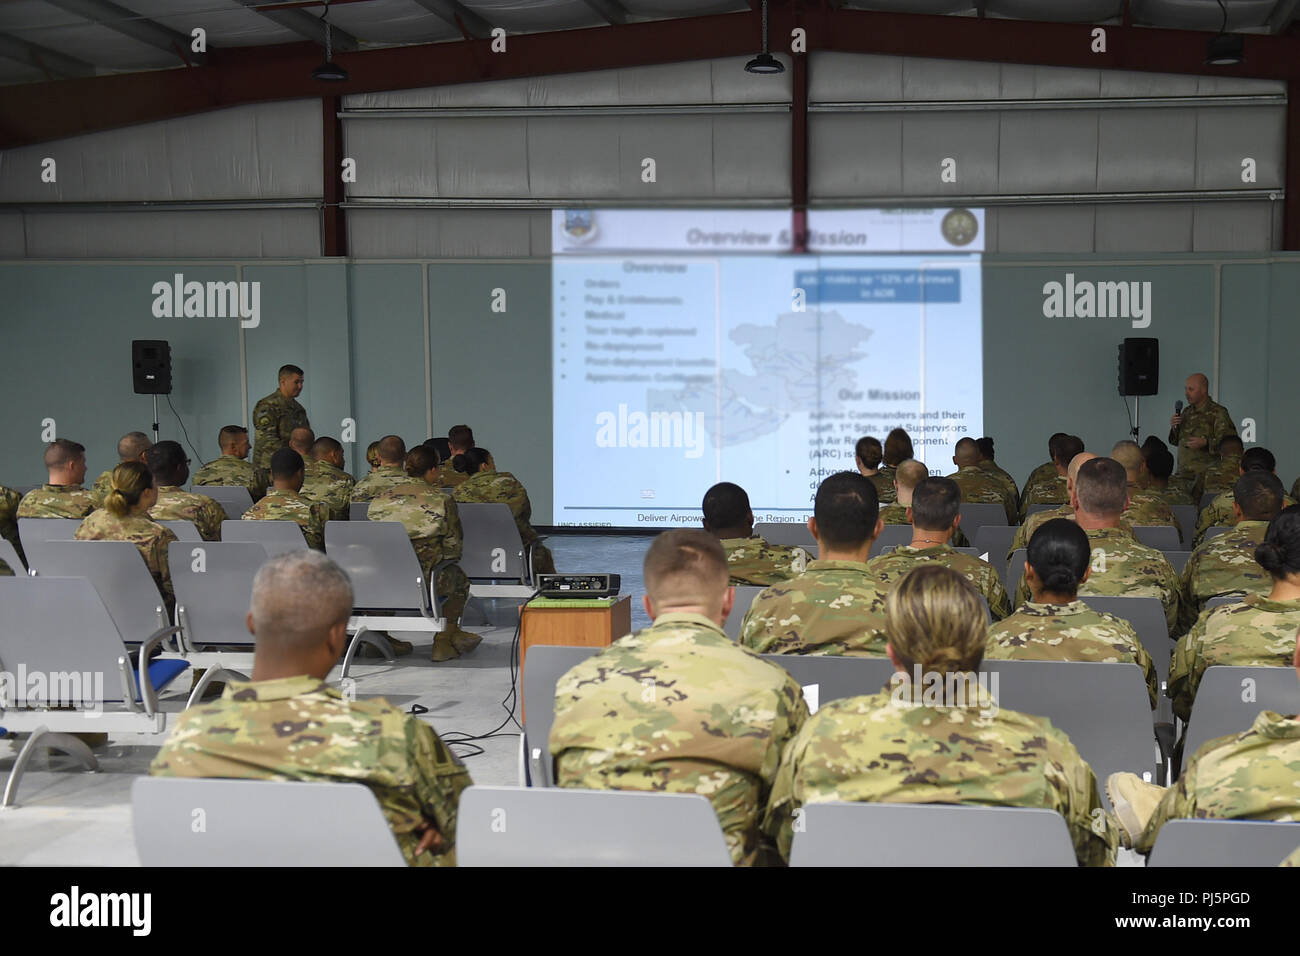 Lt. Col. Andrew Frankel (left), Deputy Air Reserve Component advisor and Col. Cory Reid (right), Senior ARC advisor, speak to Air Reserve and Air National Guard members deployed to the 407th Air Expeditionary Group at a town hall meeting at an undisclosed location in Southwest Asia, Aug. 24, 2018. Frankel and Reid met with ARC Airmen and 407th AEG leadership at all levels to make sure they had a complete understanding of what ARC Airmen bring to the fight and address any concerns ARC members may have while deployed. (U.S. Air Force photo by Staff Sgt. Dana J. Cable) Stock Photo